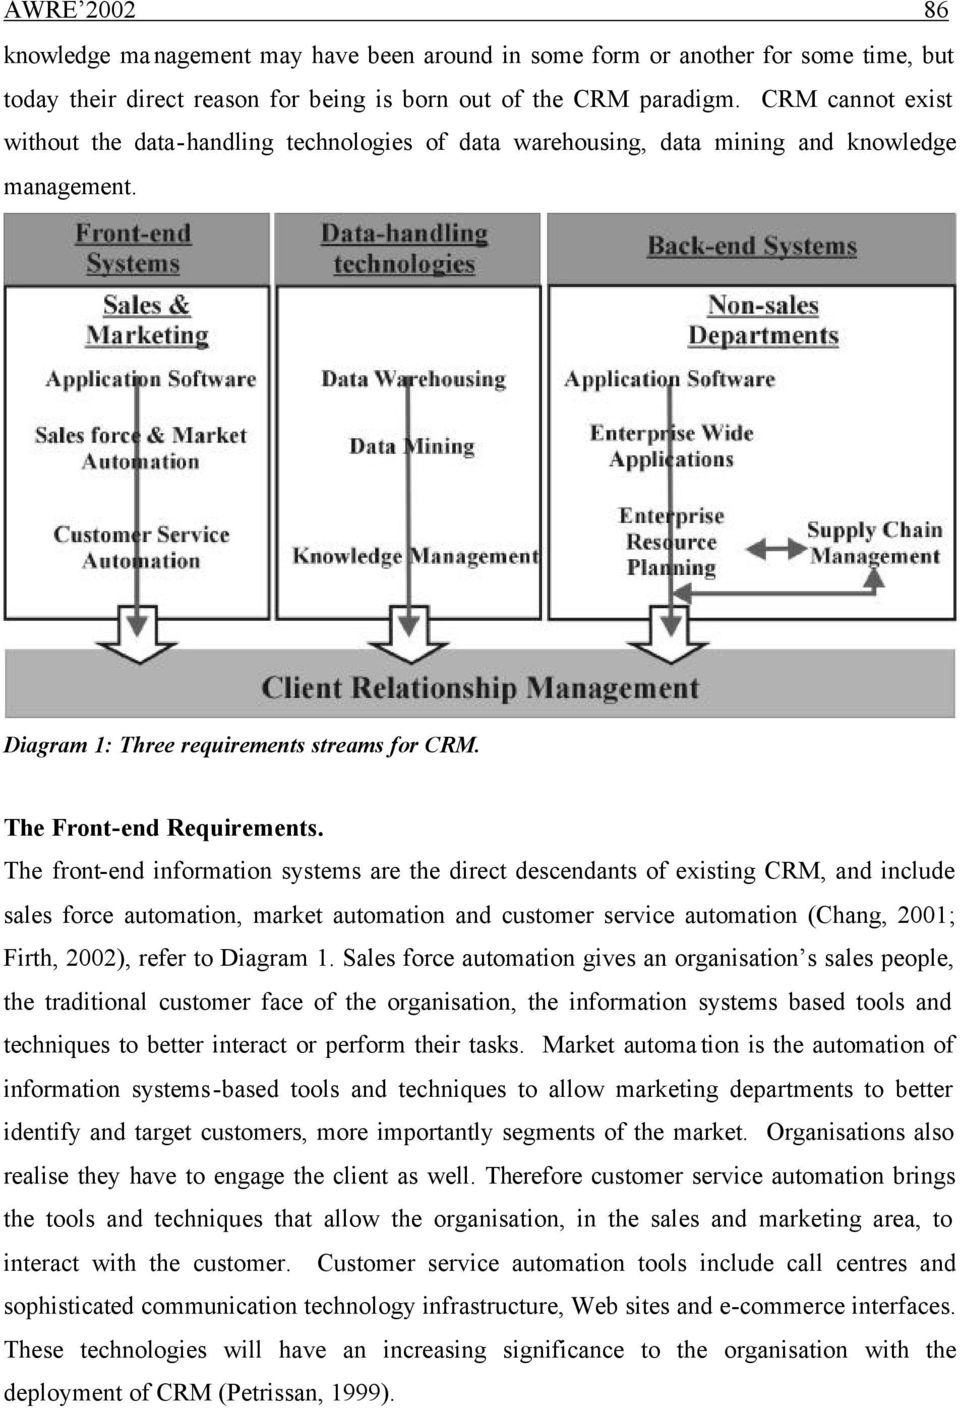 The front-end information systems are the direct descendants of existing CRM, and include sales force automation, market automation and customer service automation (Chang, 2001; Firth, 2002), refer